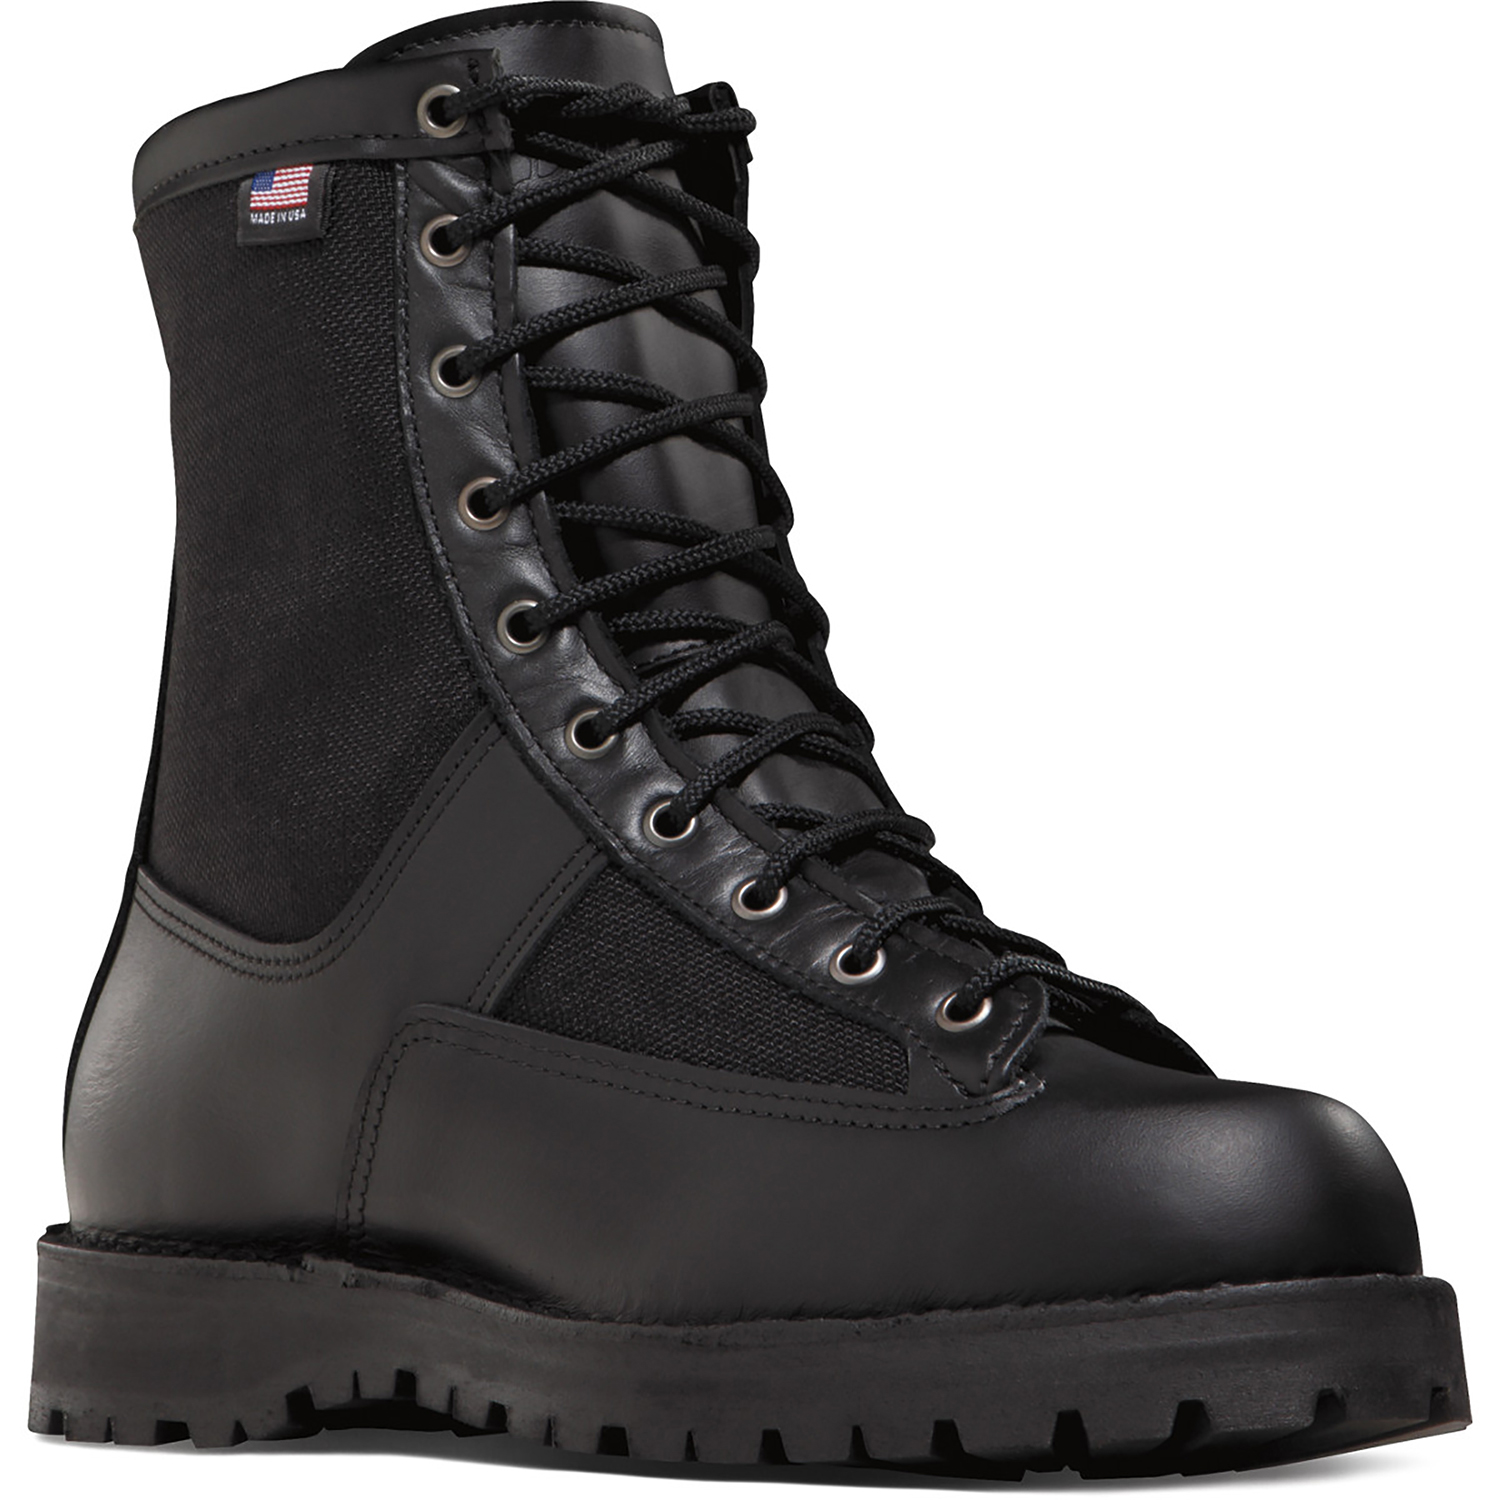 "Danner Acadia 8"" Insulated Boot"